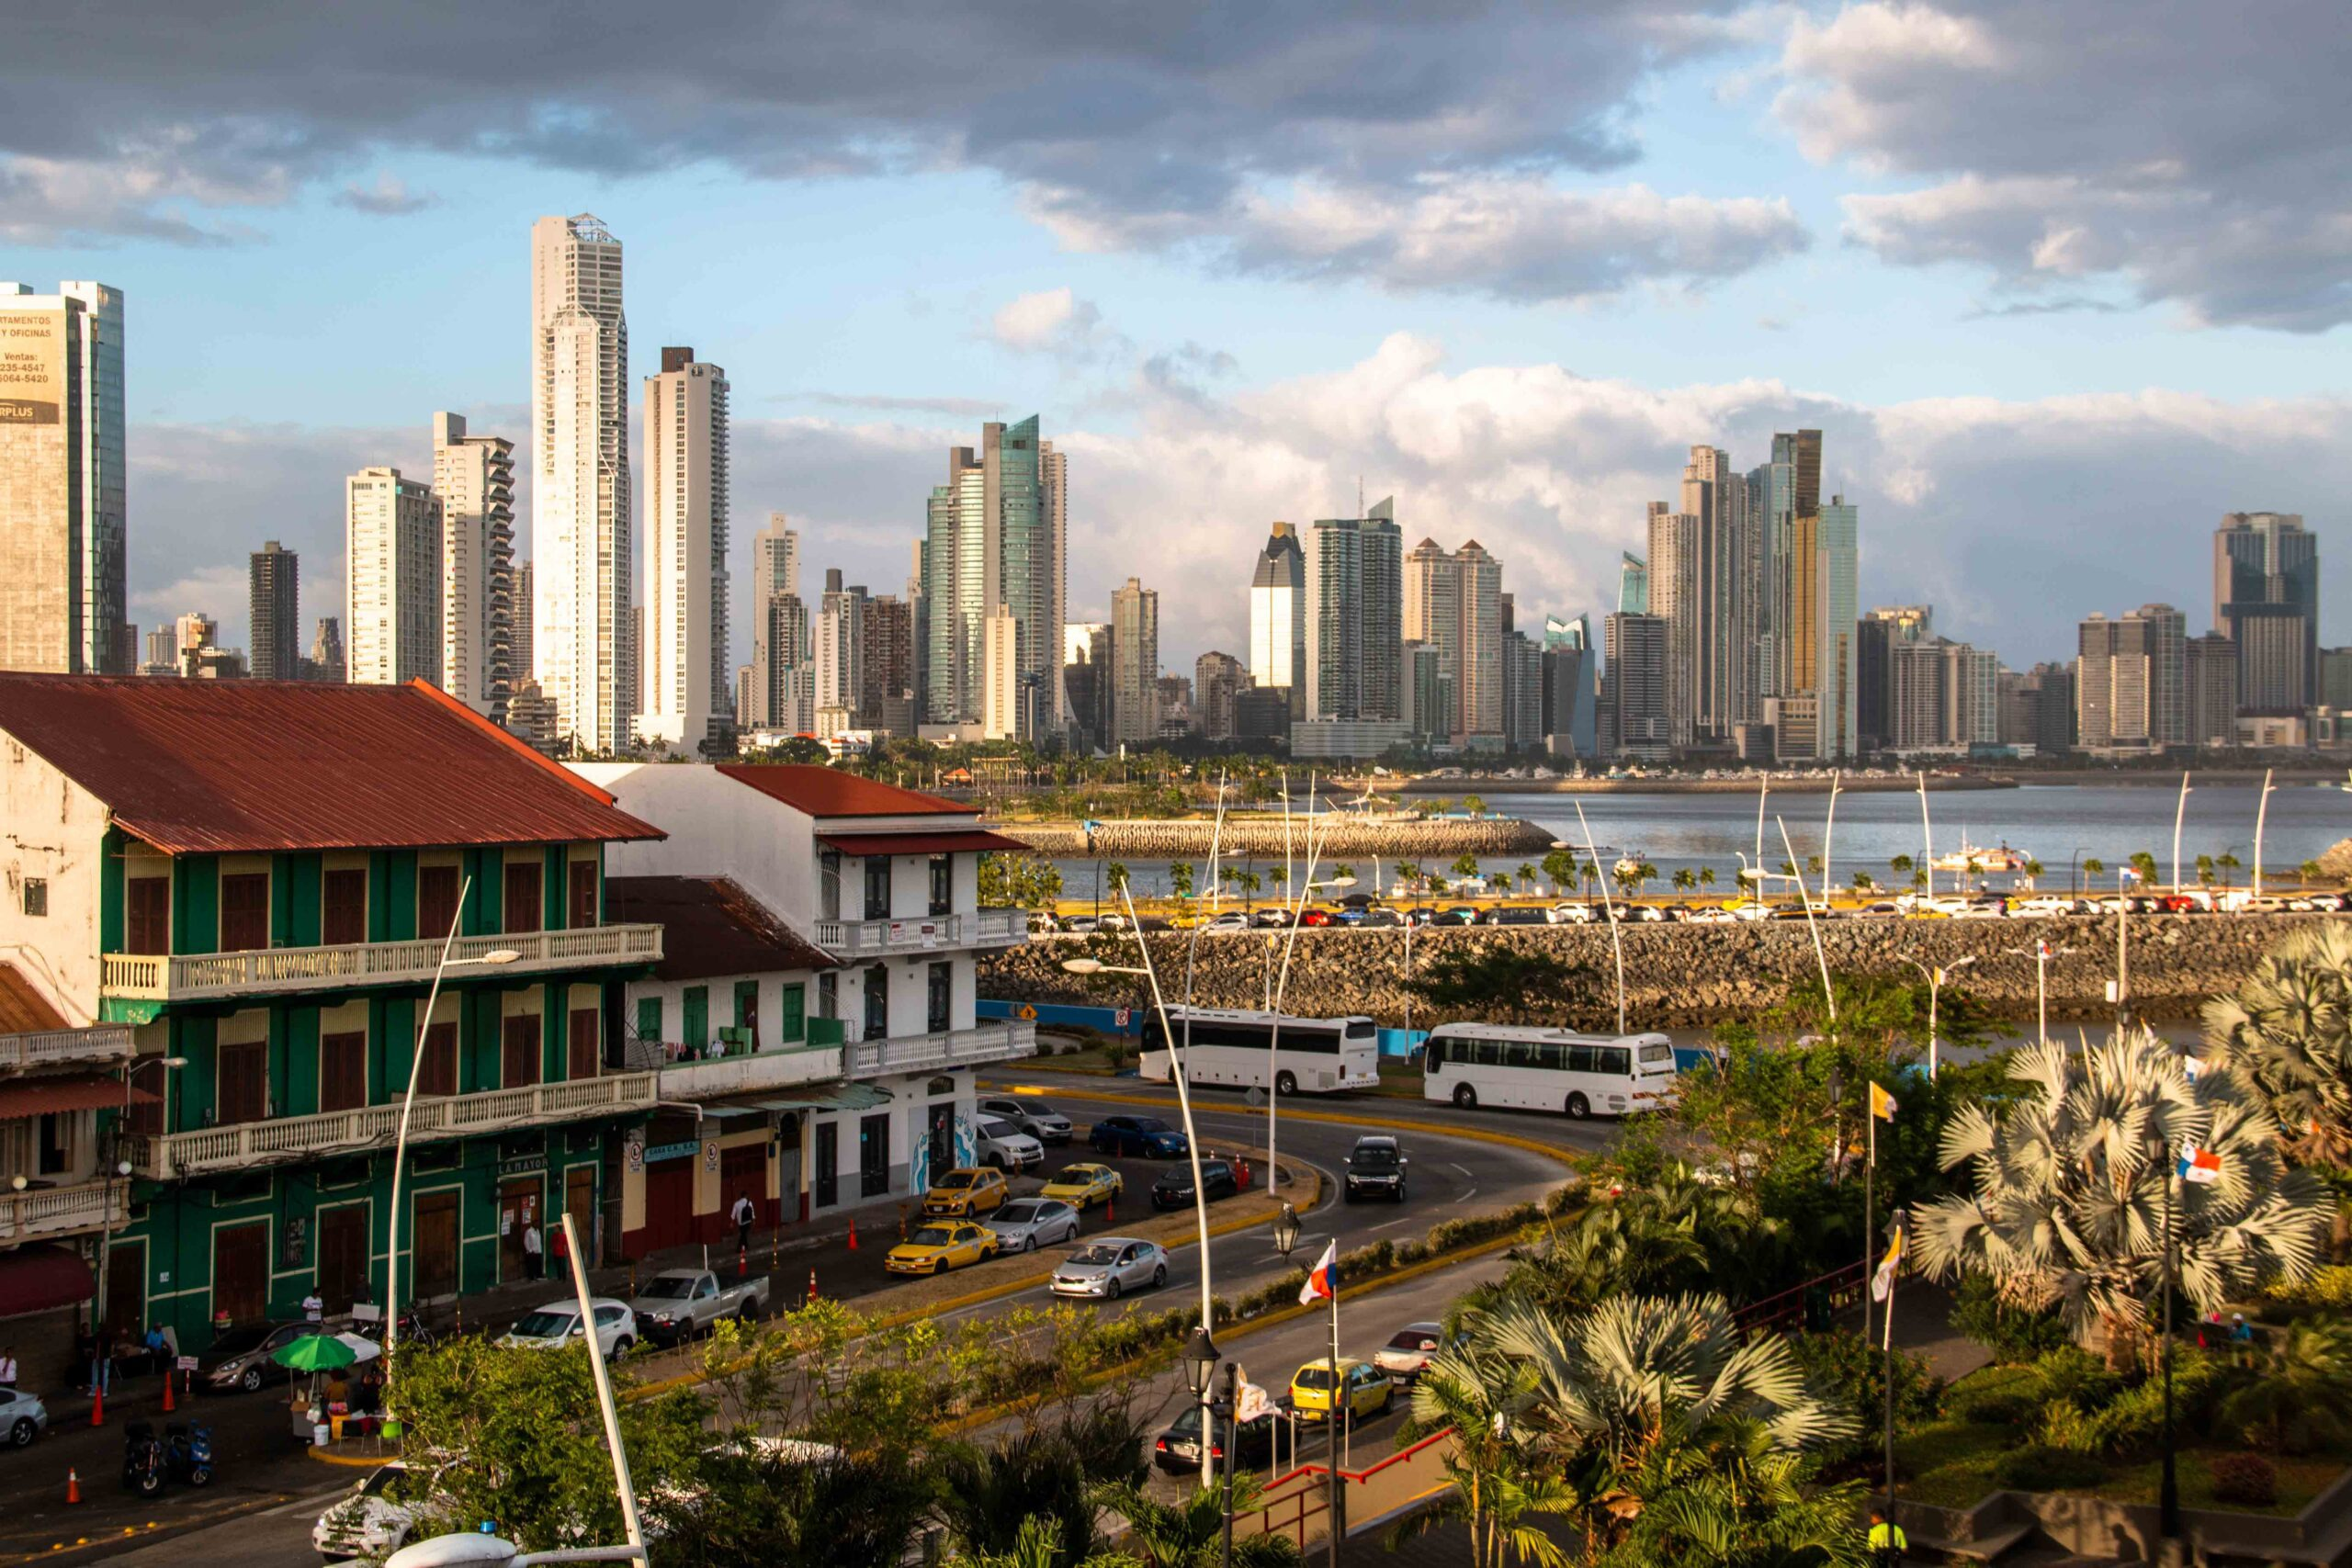 Panama City skyline from Casco Viejo